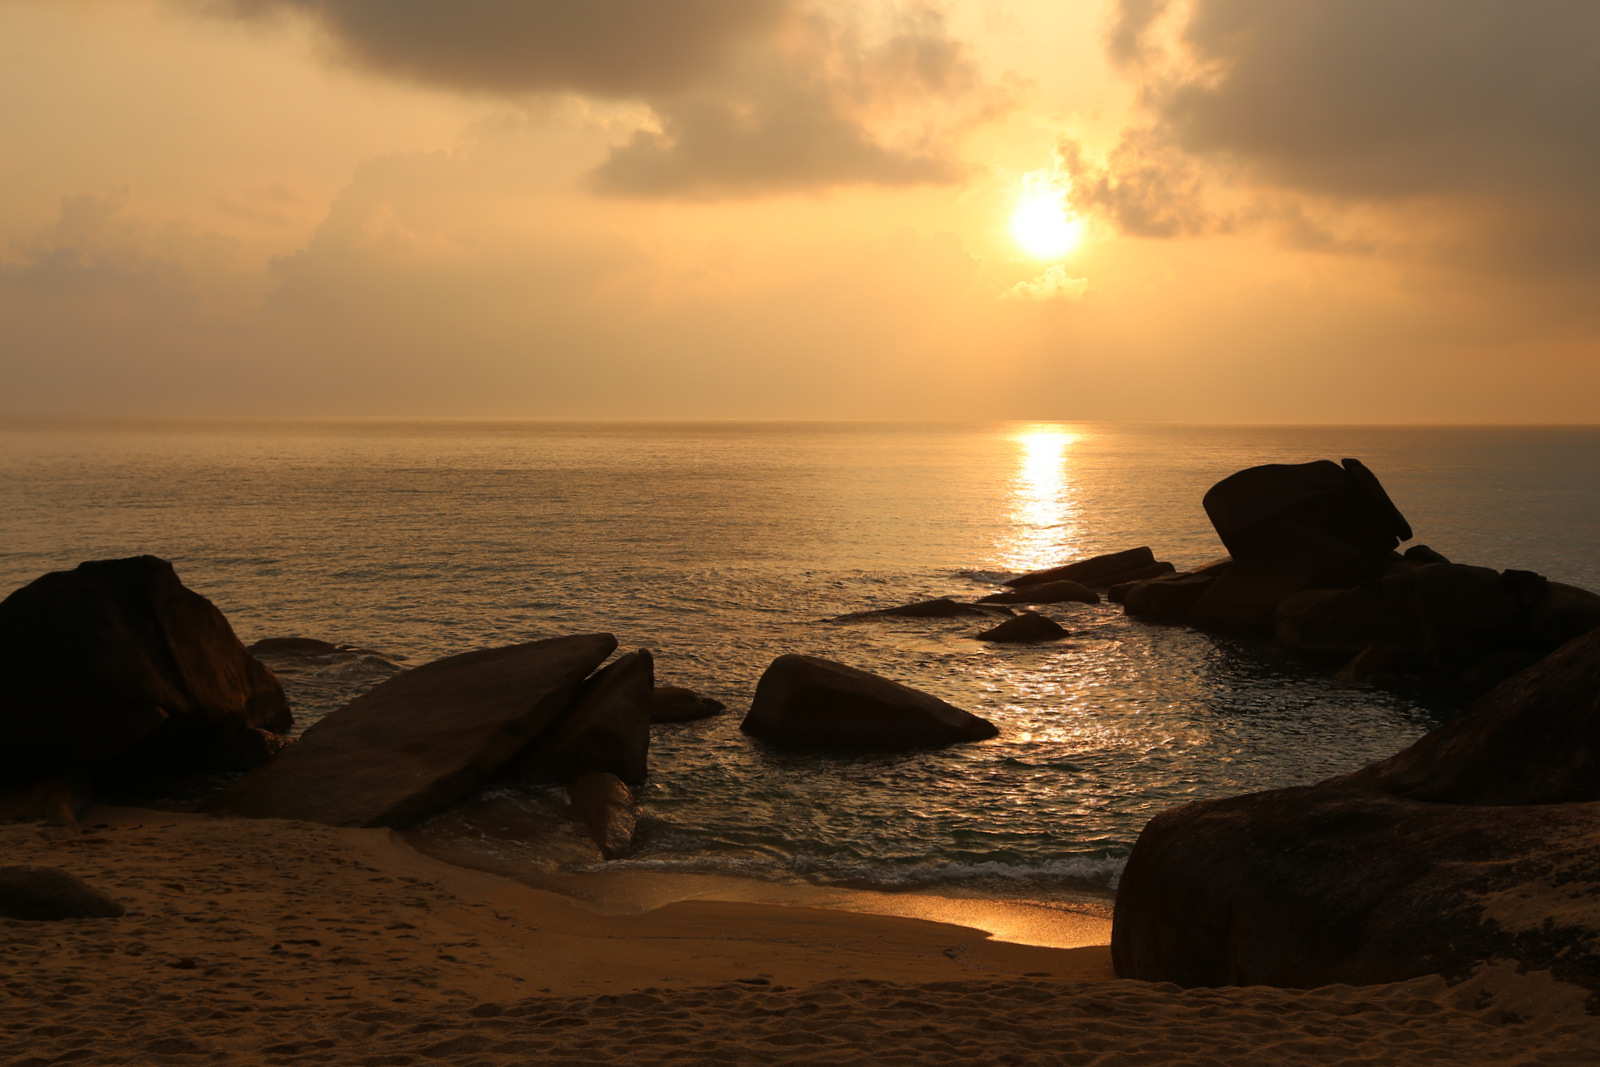 Koh Samui - sunrise on Lamai Beach